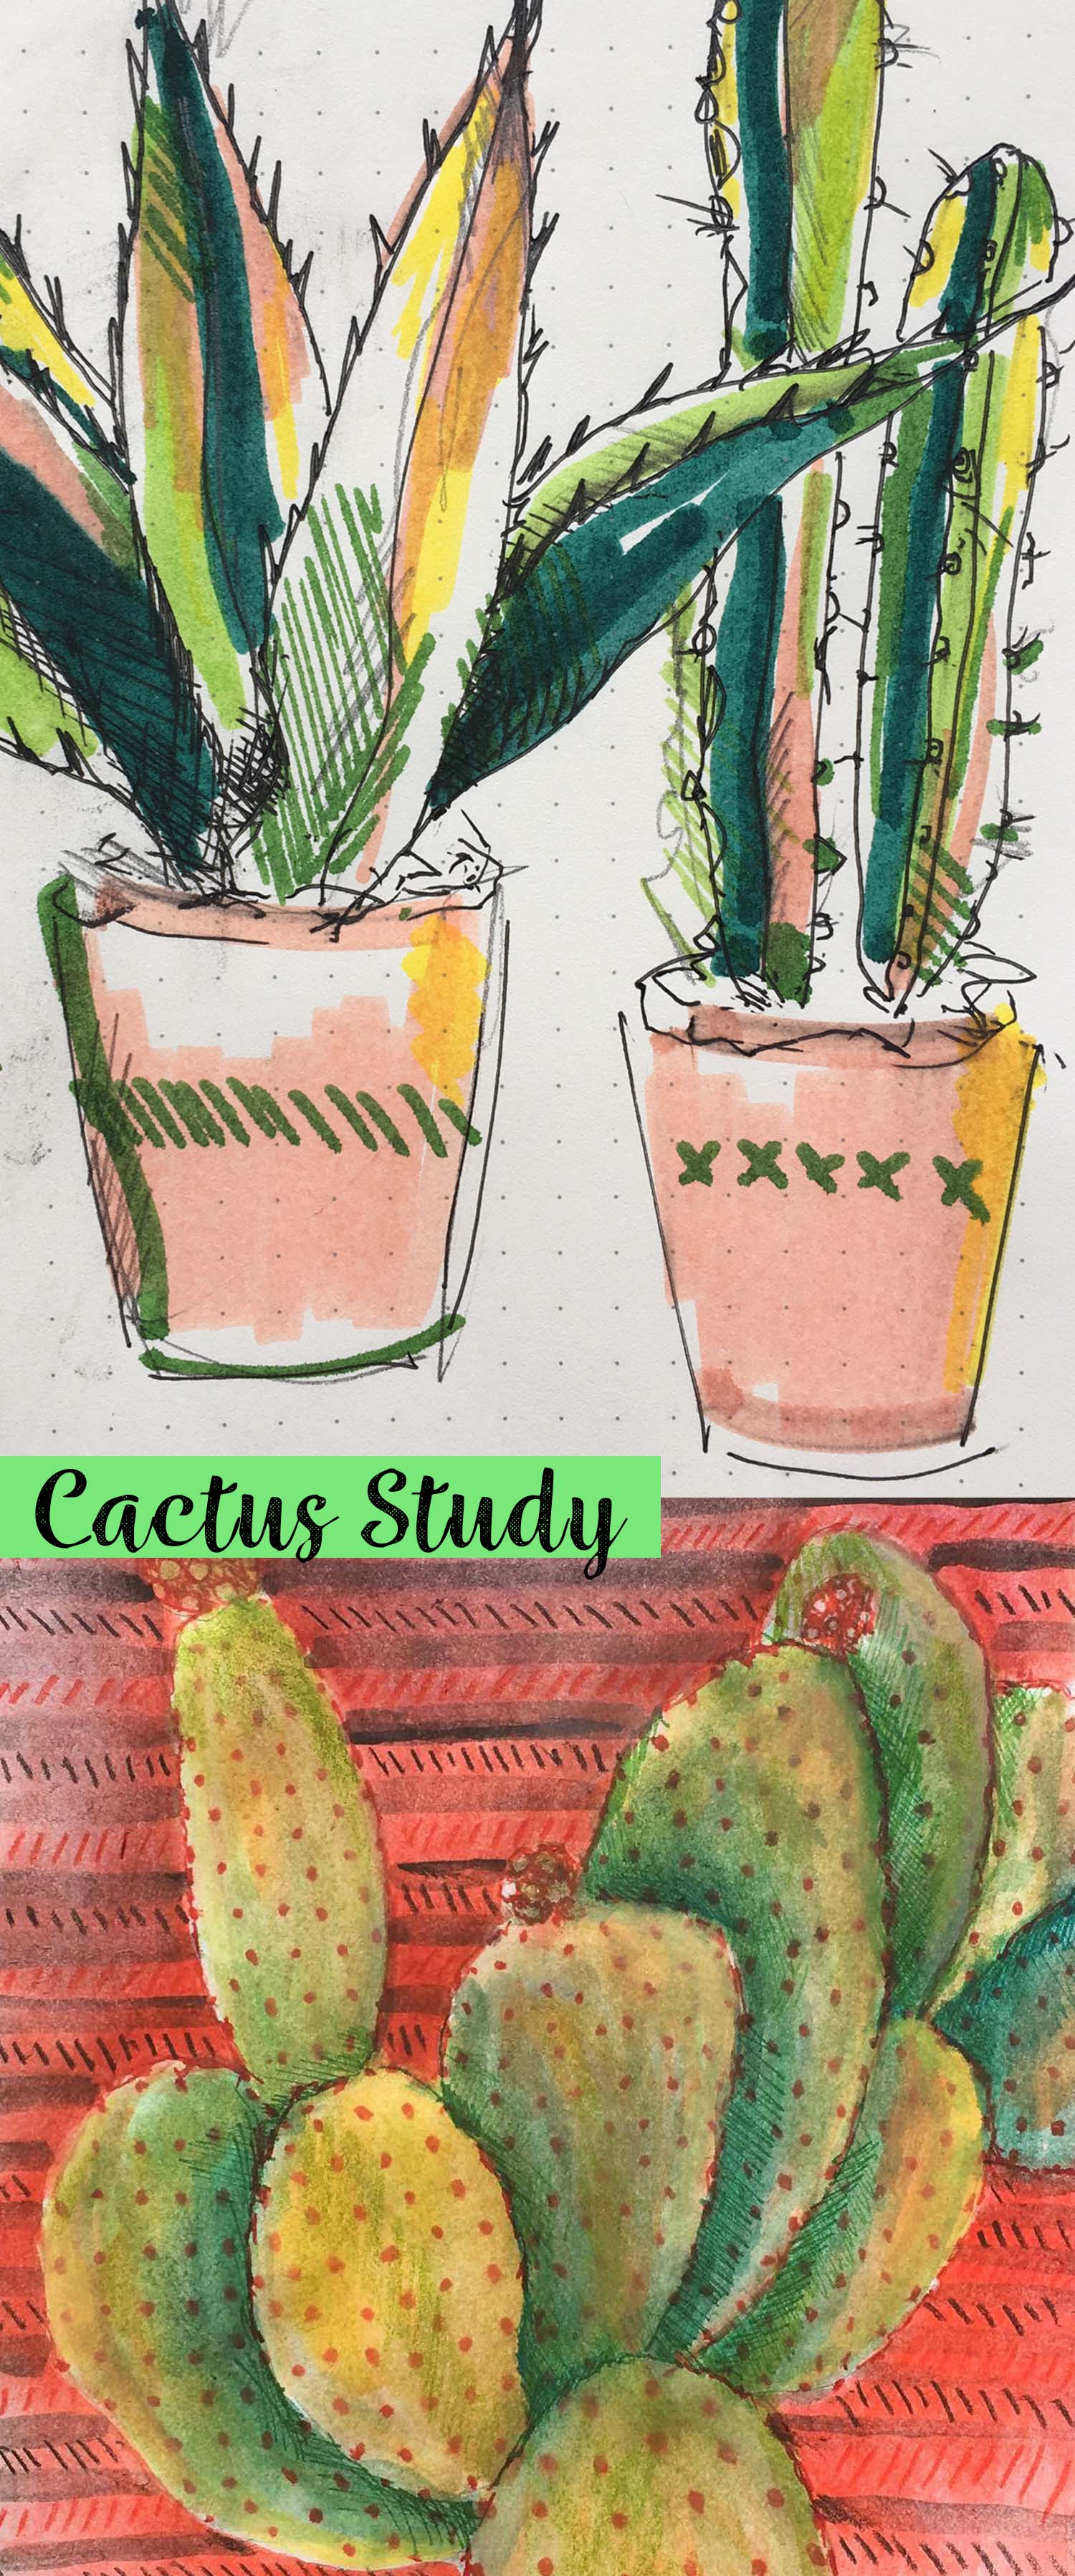 Cactus studies and drawings by Cherith Harrison